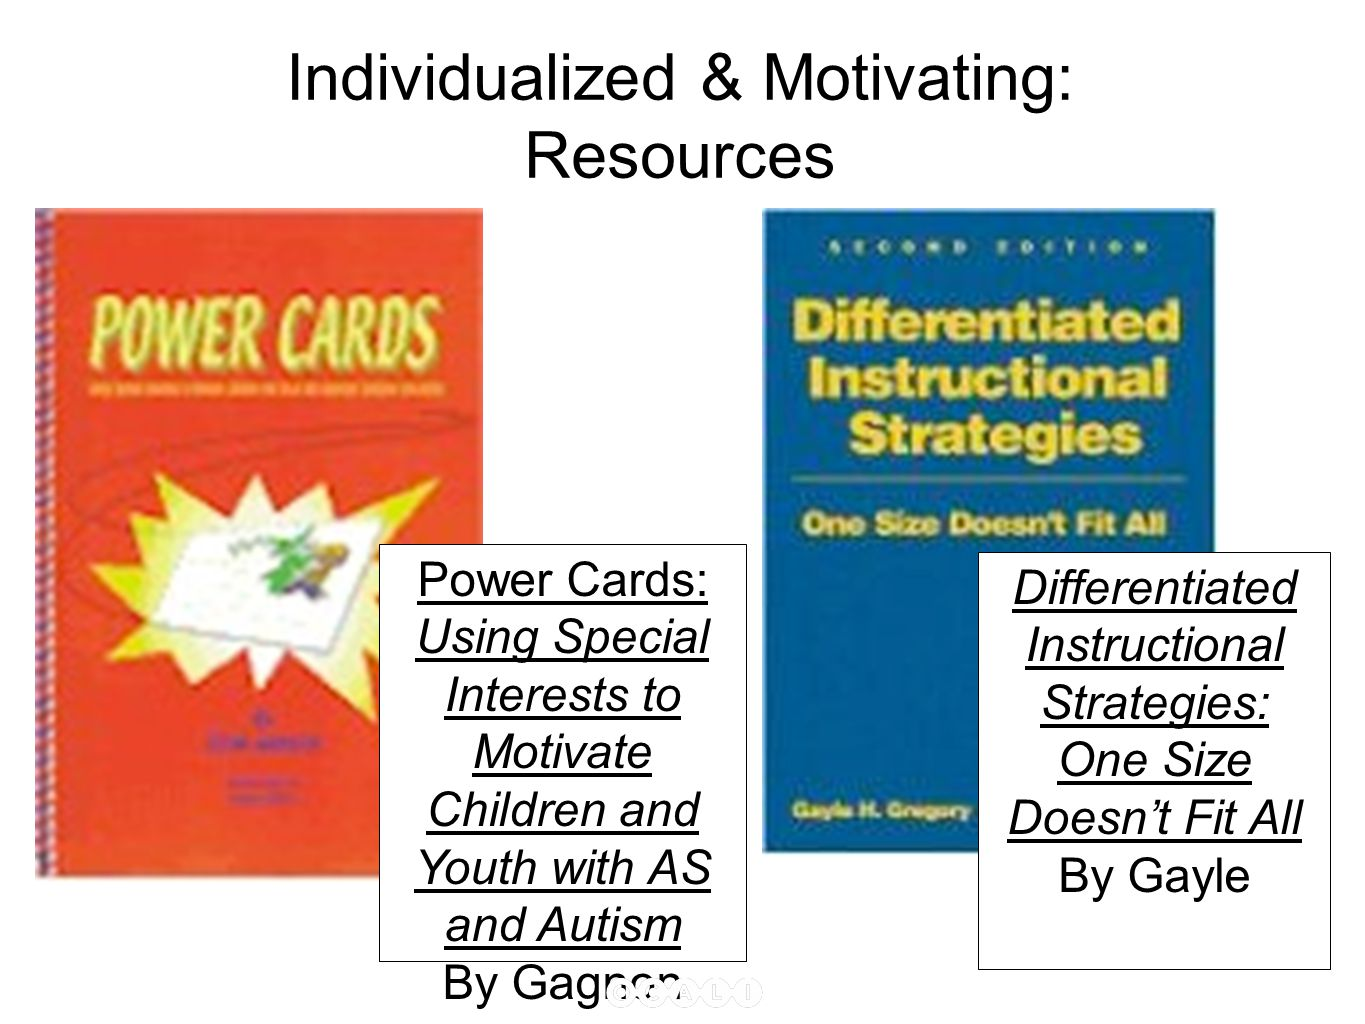 Individualized & Motivating: Resources